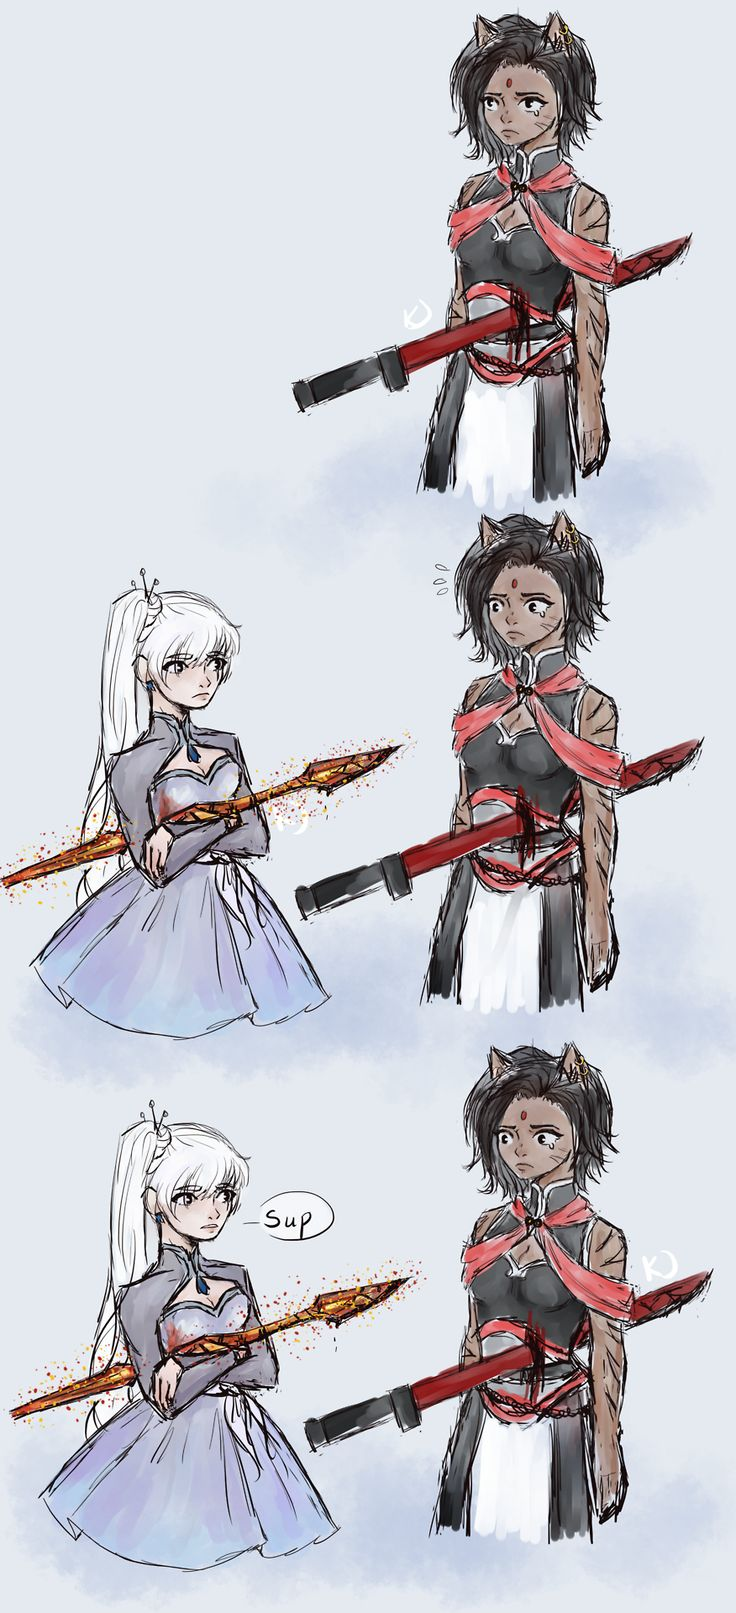 RWBY volume 5: Everyone gets stabbed ok but come on she isn't going to die relax,,,,but she might get a scar tho,,,